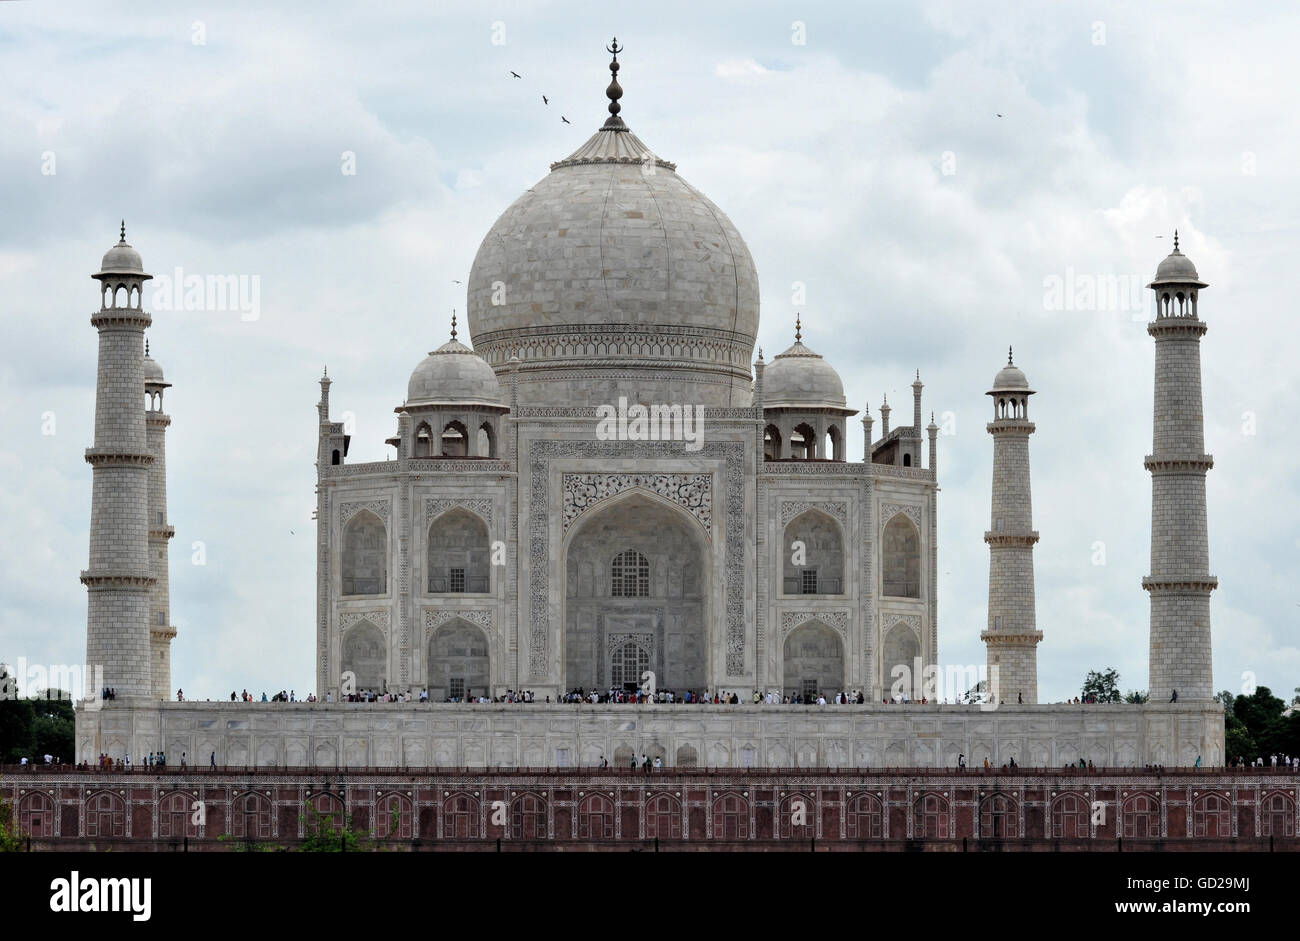 The Taj Mahal is a white marble mausoleum in Agra,  built by Mughal Emperor Shah Jahan in memory of his third wife Stock Photo